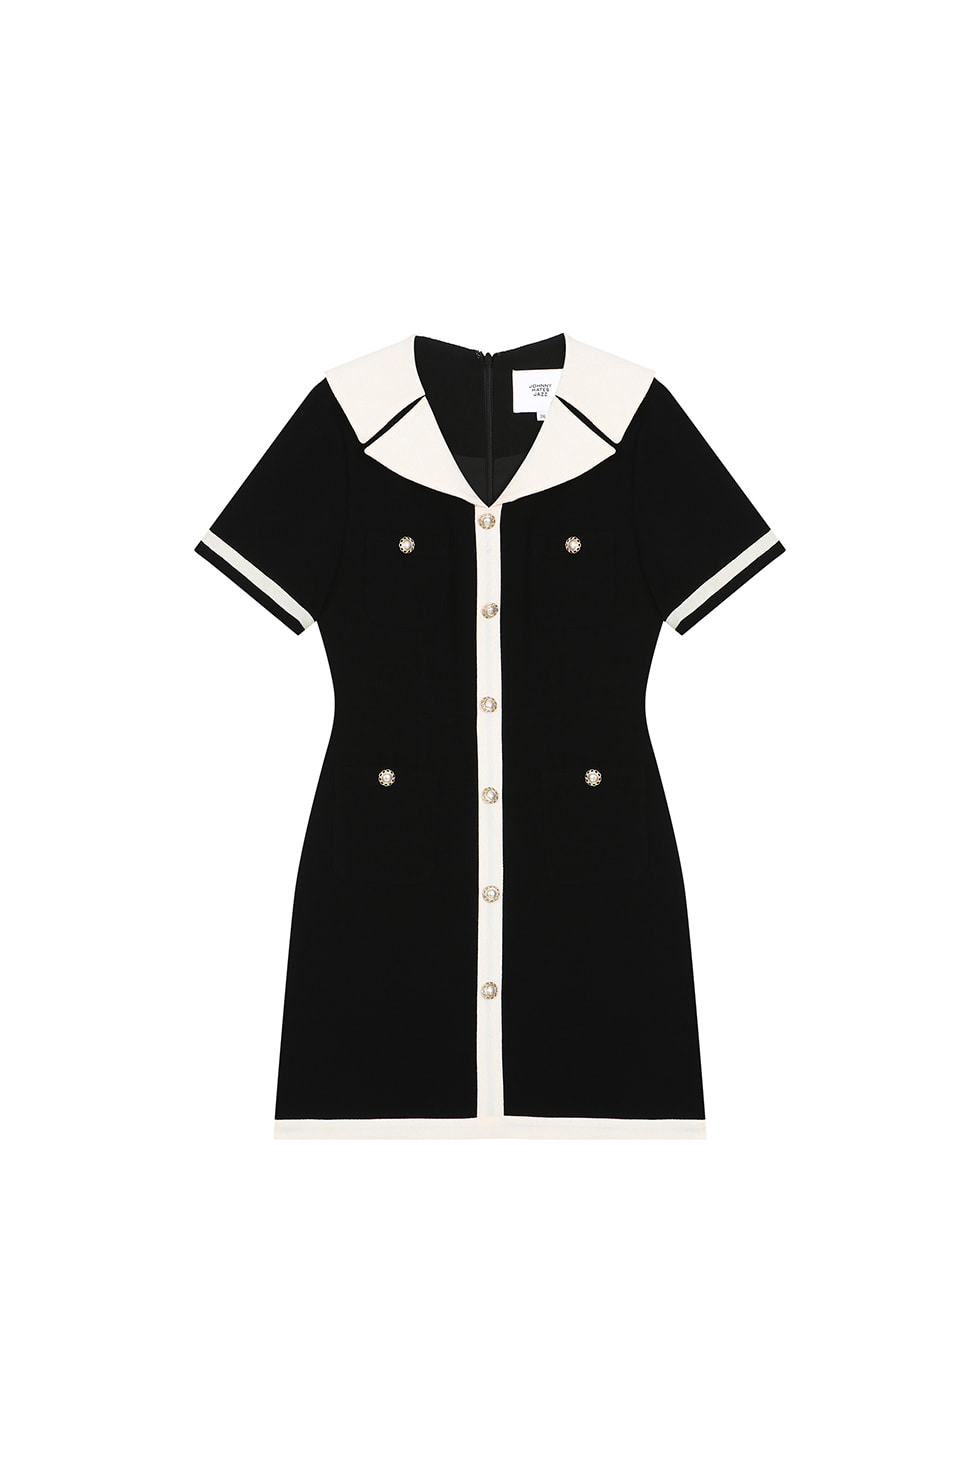 [6월 10일 예약배송]POCKET MINI DRESS - BLACK